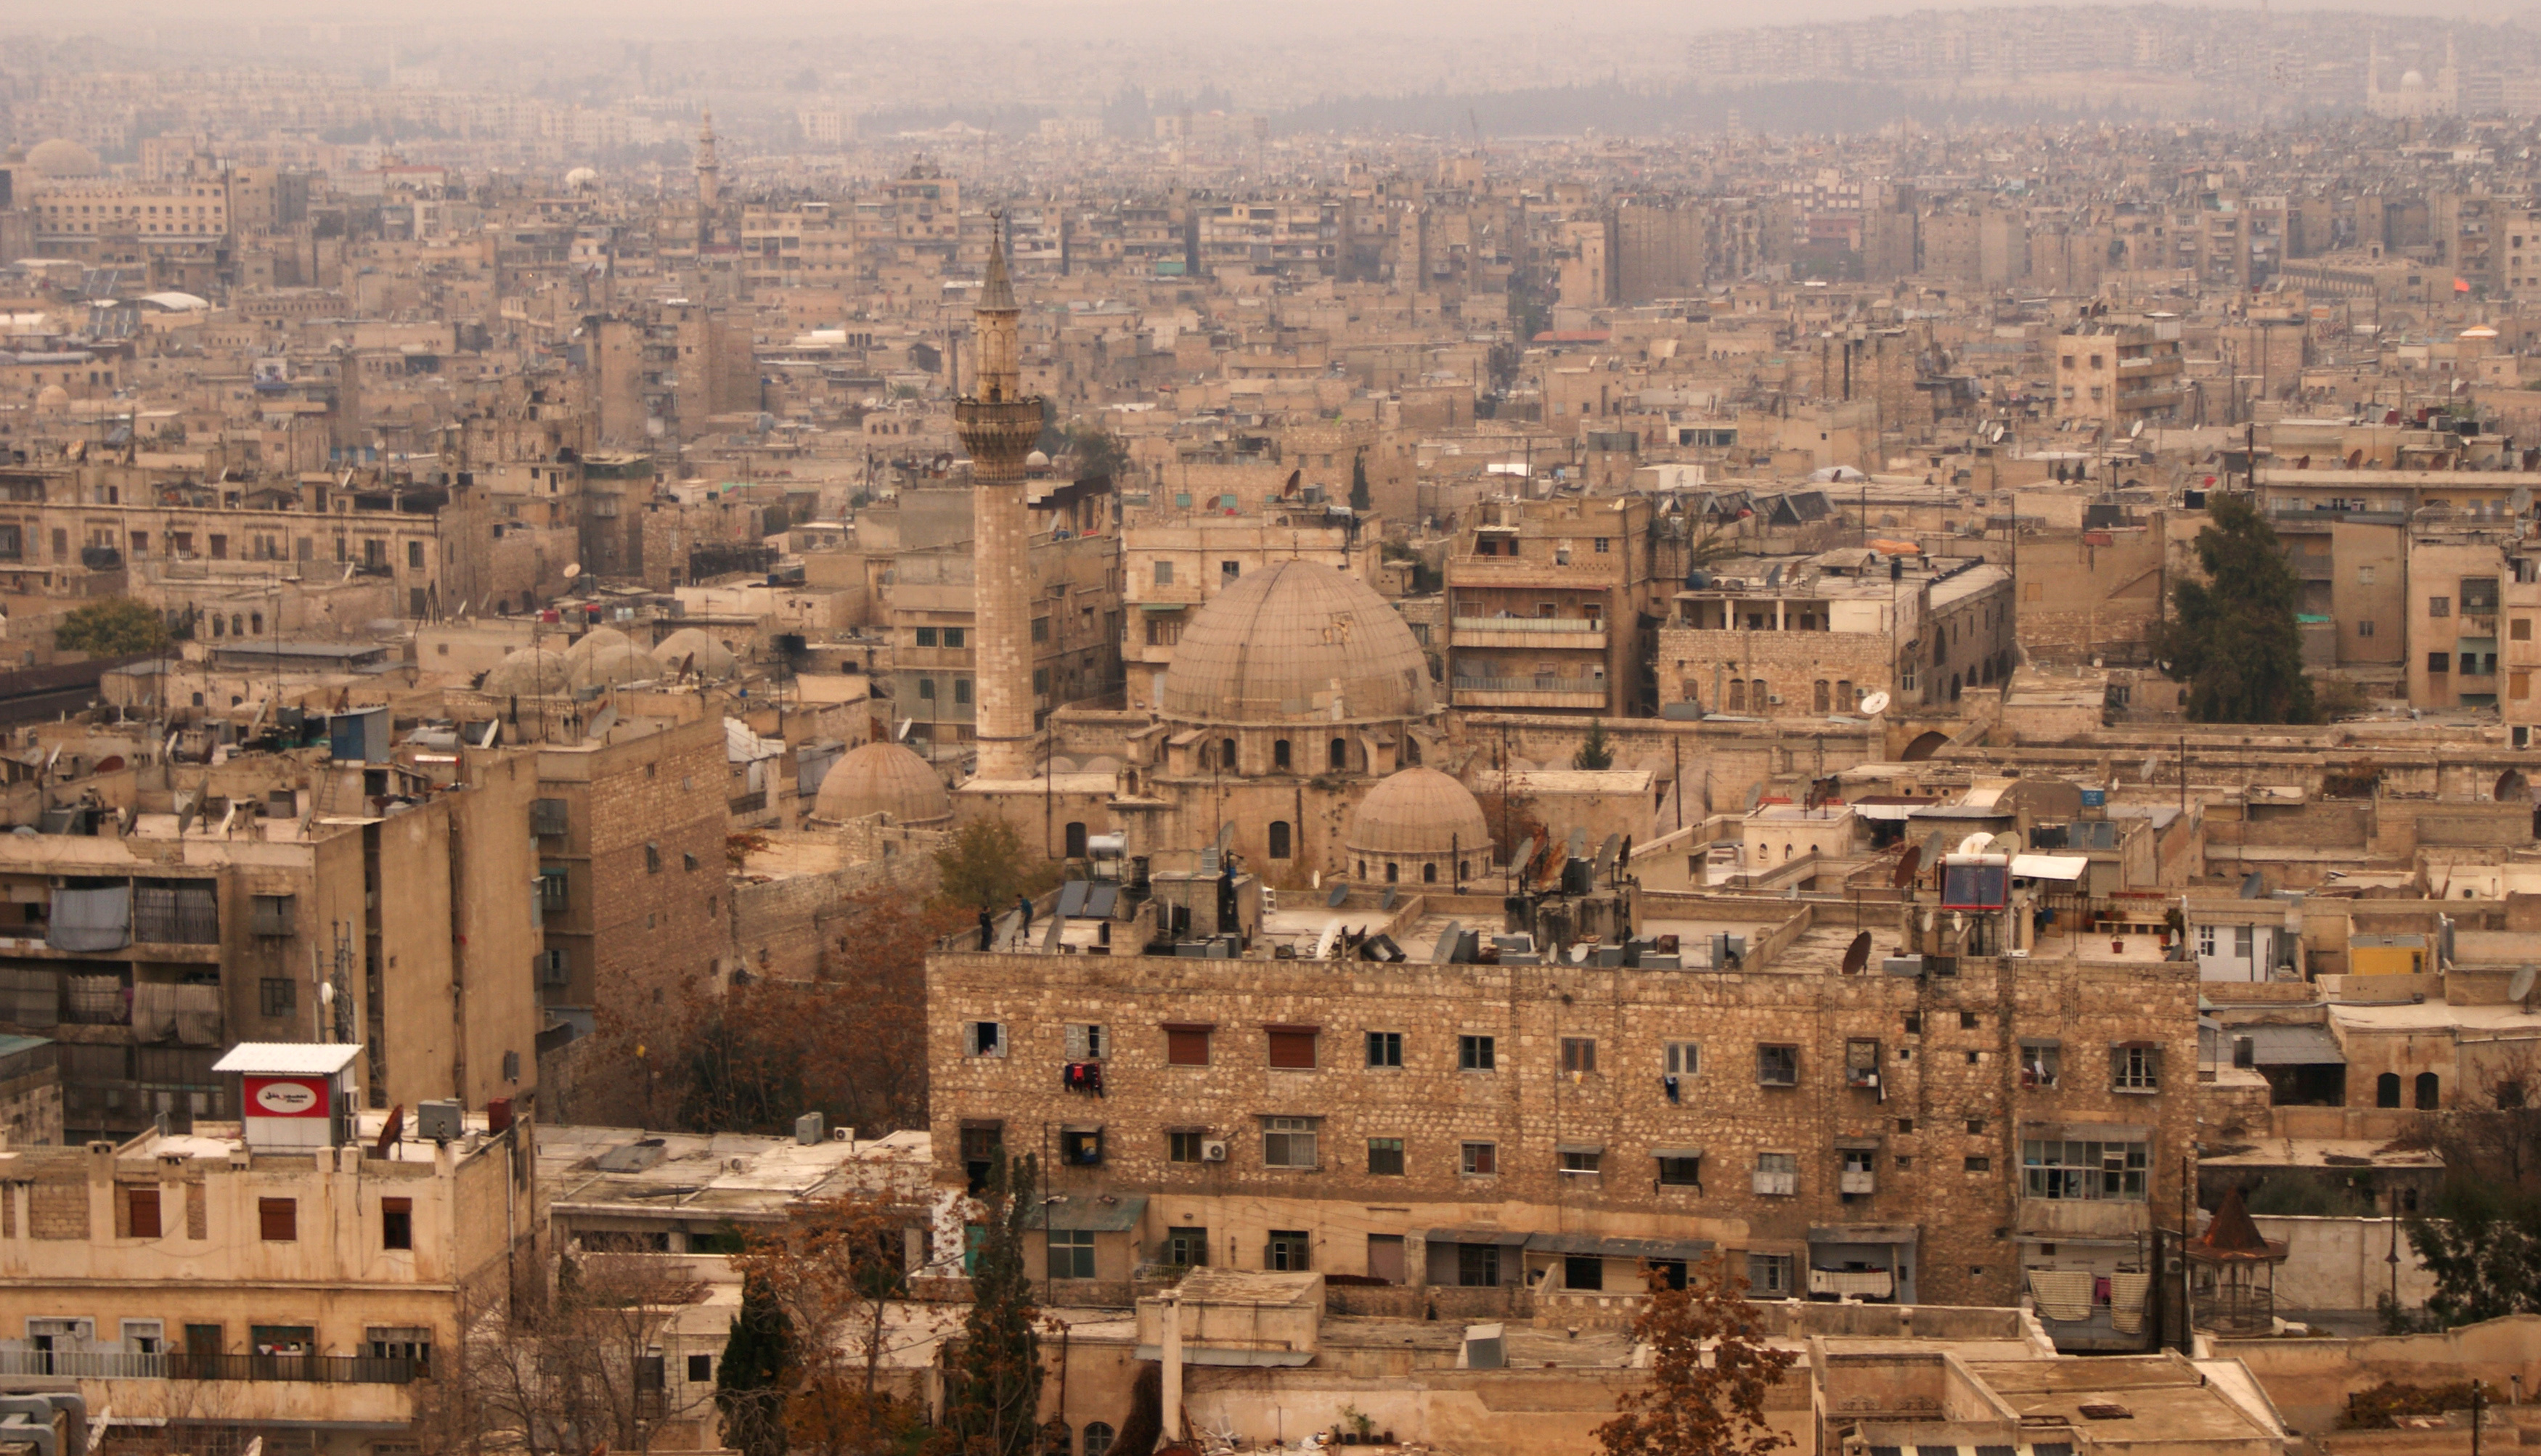 The Old City of Aleppo is viewed from the historic citadel on Dec. 11, 2009. Photo by Khalil Ashawi/Reuters